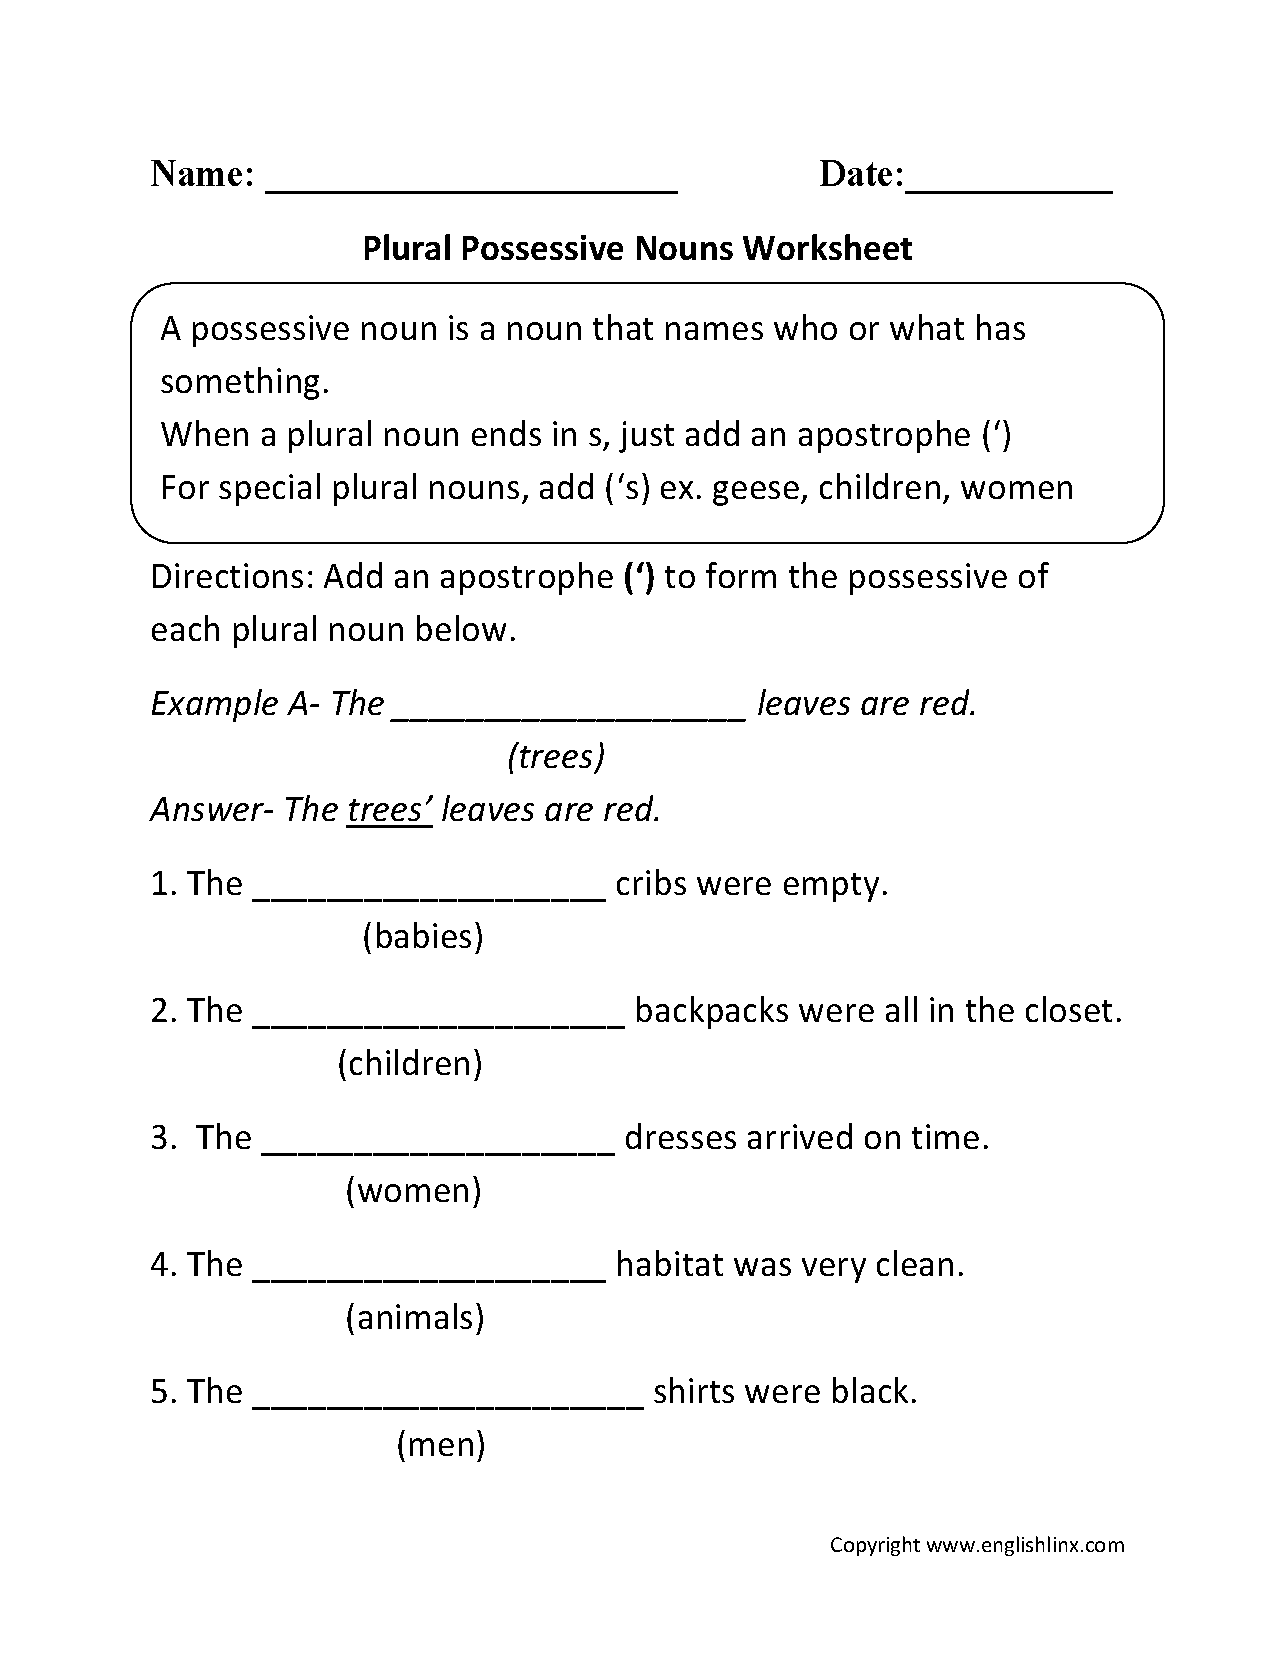 Worksheets Noun Worksheet plural possessive nouns worksheets more